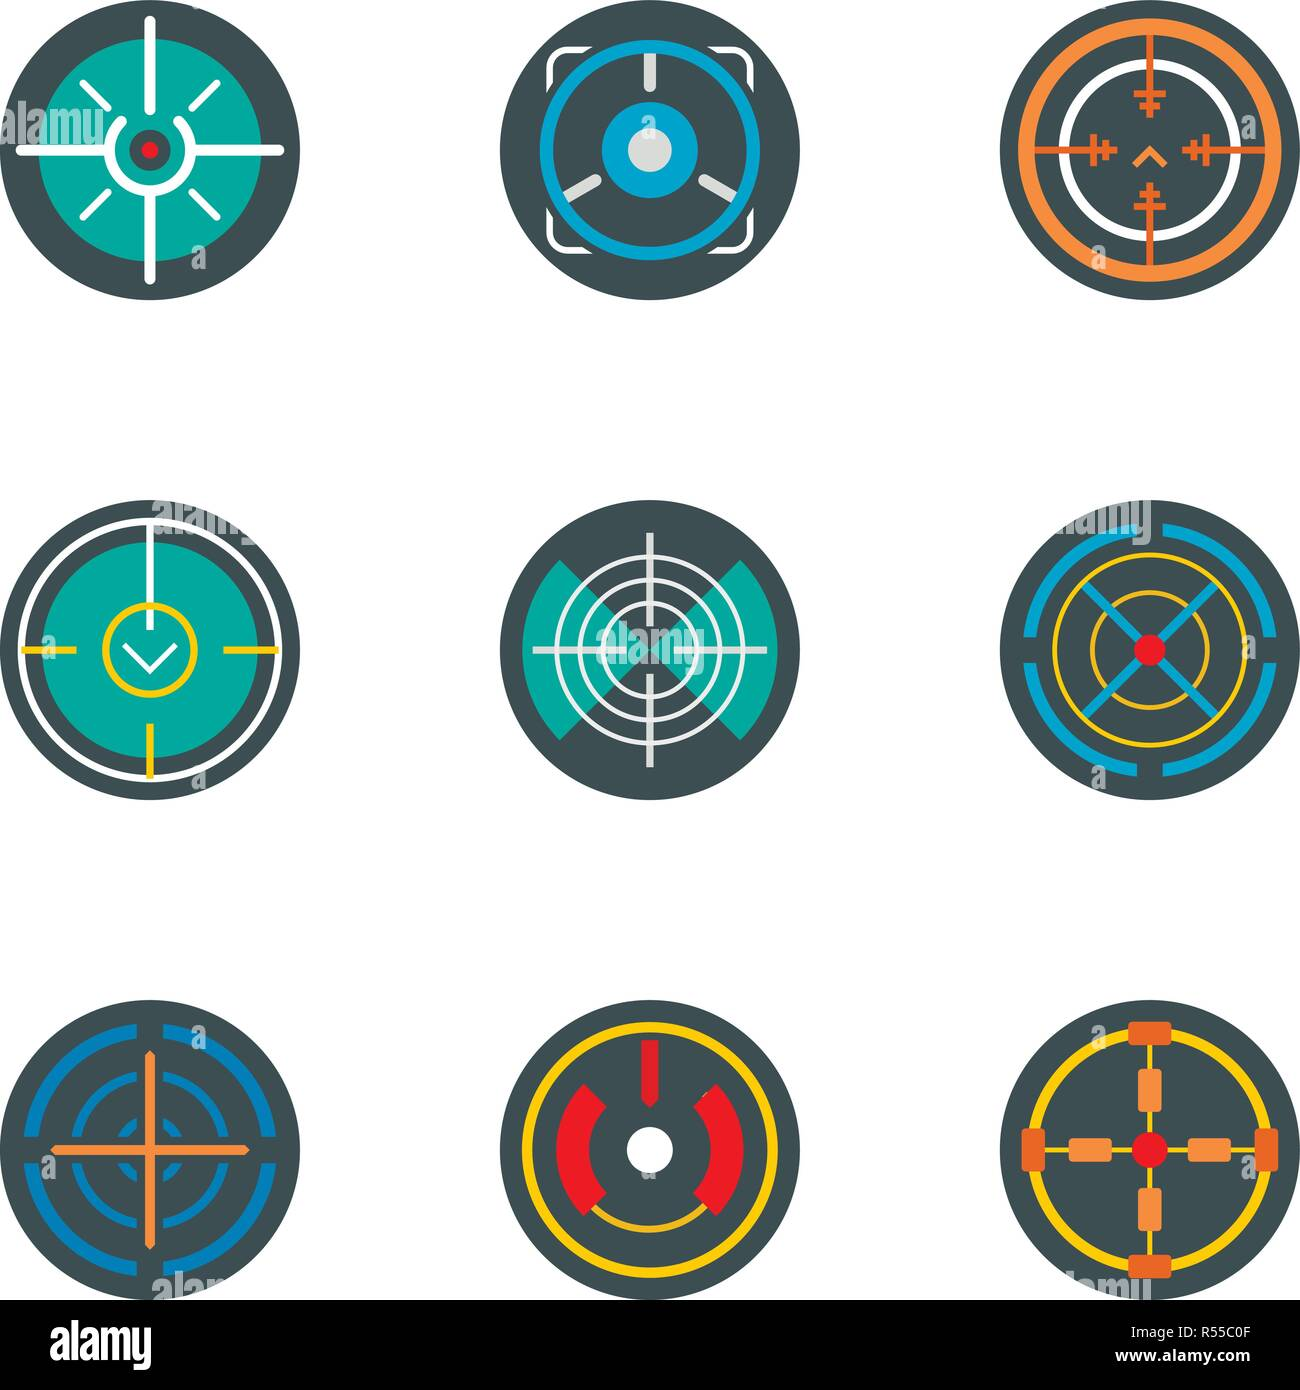 sniper aim icon set flat set of 9 sniper aim vector icons for web design stock vector image art alamy https www alamy com sniper aim icon set flat set of 9 sniper aim vector icons for web design image226927247 html